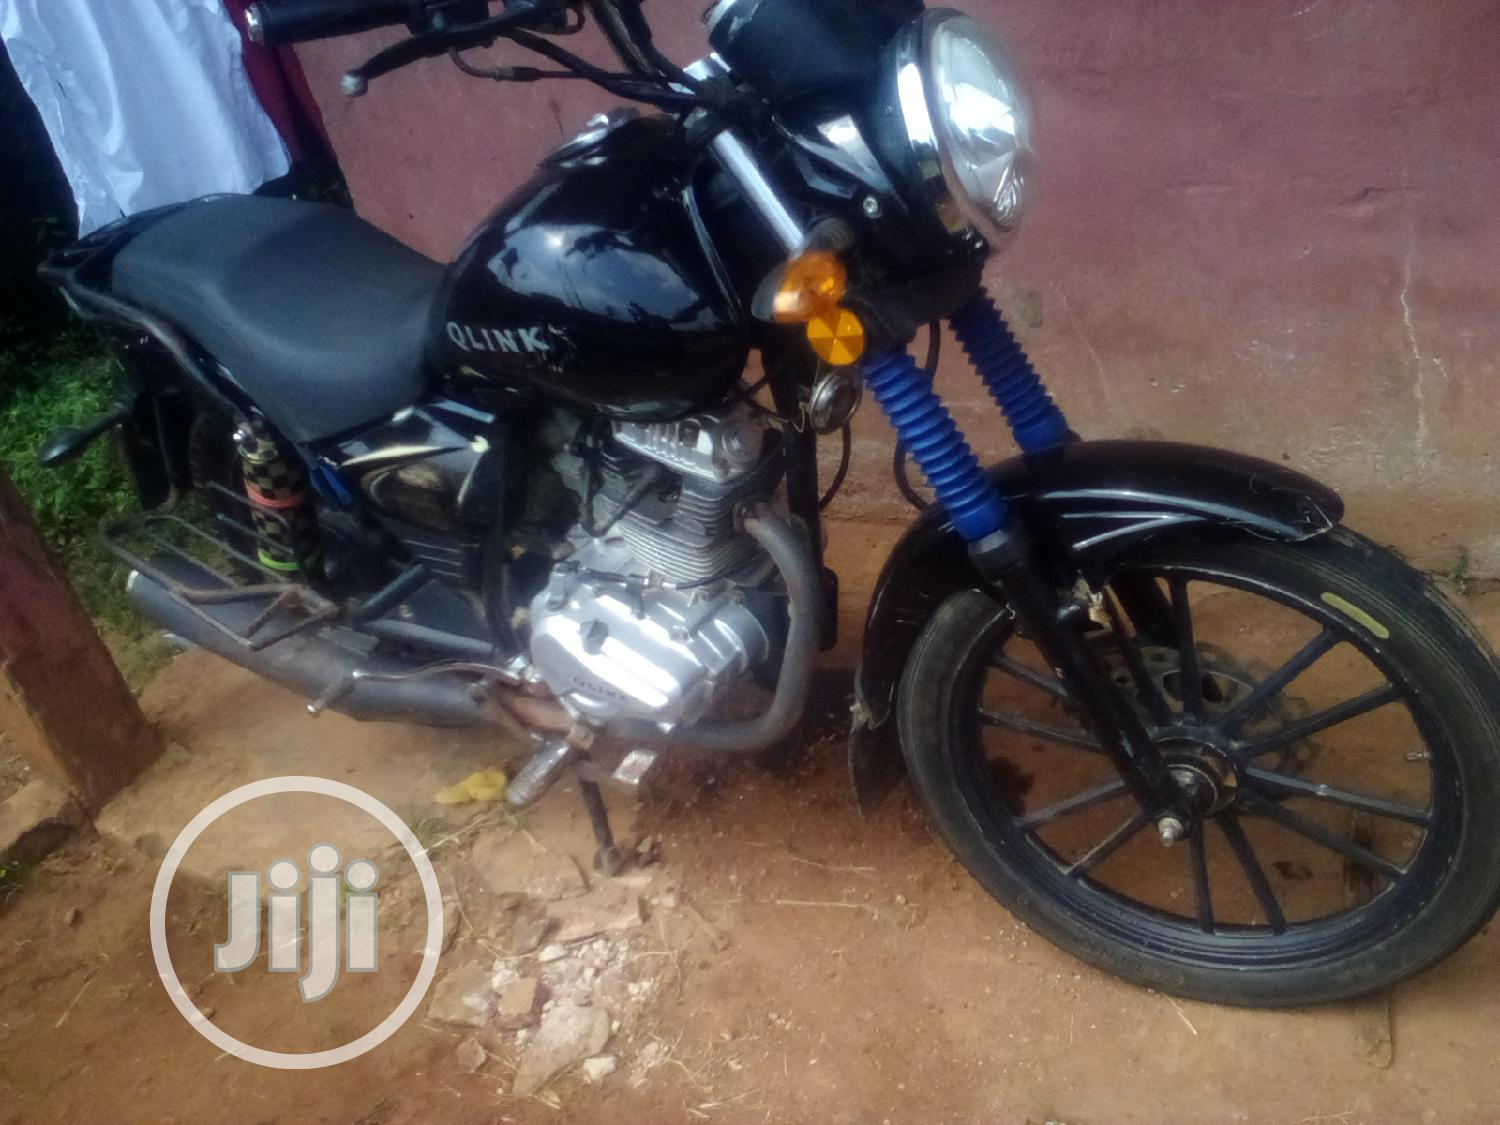 Qlink X-Ranger 200 2017 Black | Motorcycles & Scooters for sale in Benin City, Edo State, Nigeria